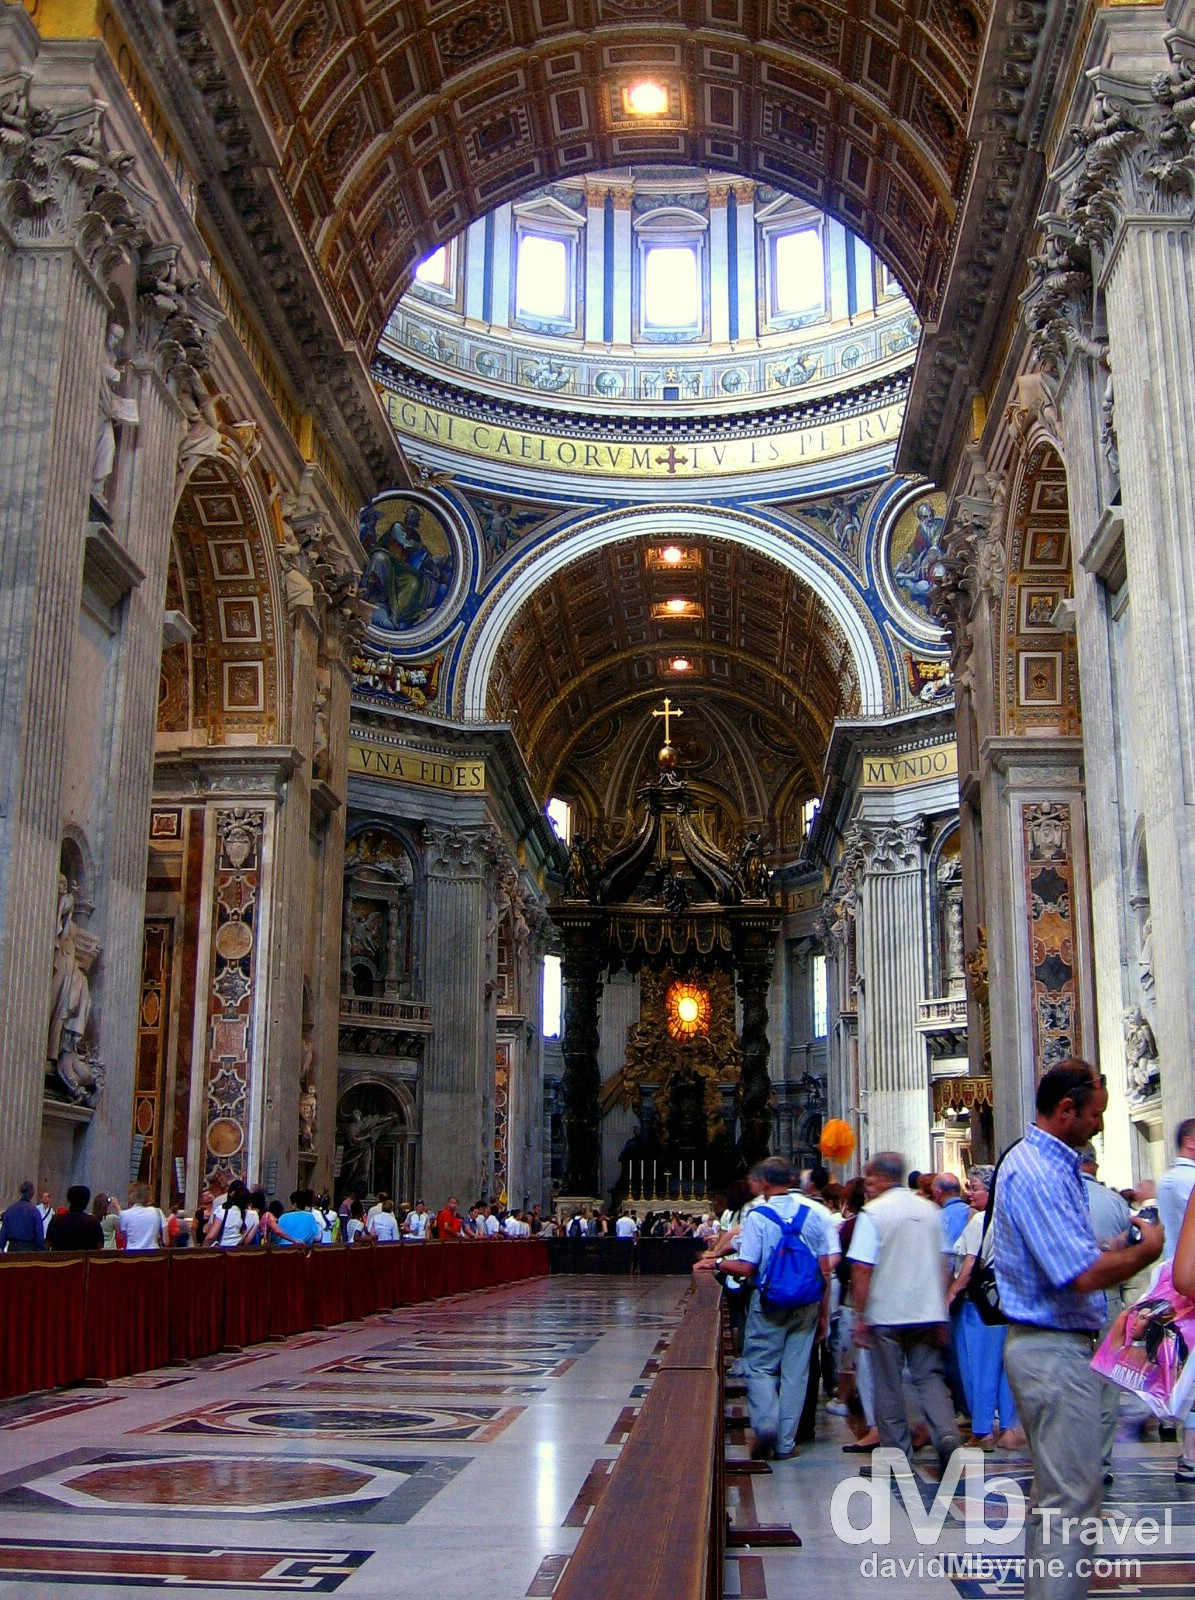 The interior of St. Peter's Basilica, Vatican City. September 3rd, 2007.